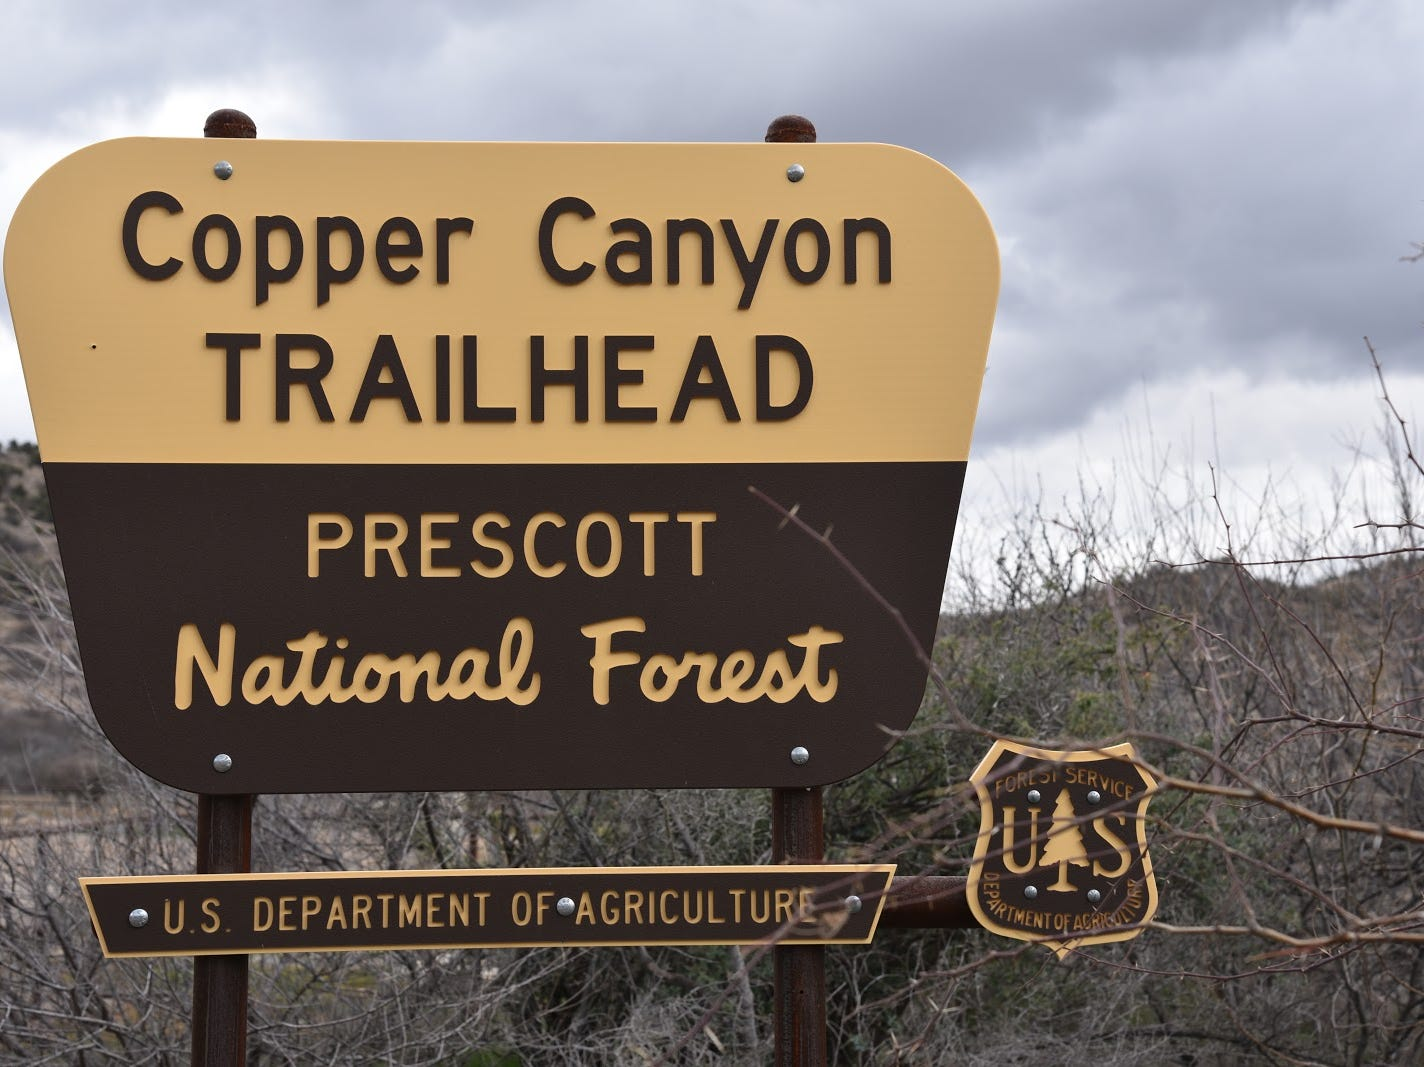 The trailhead officially opened in 2012.